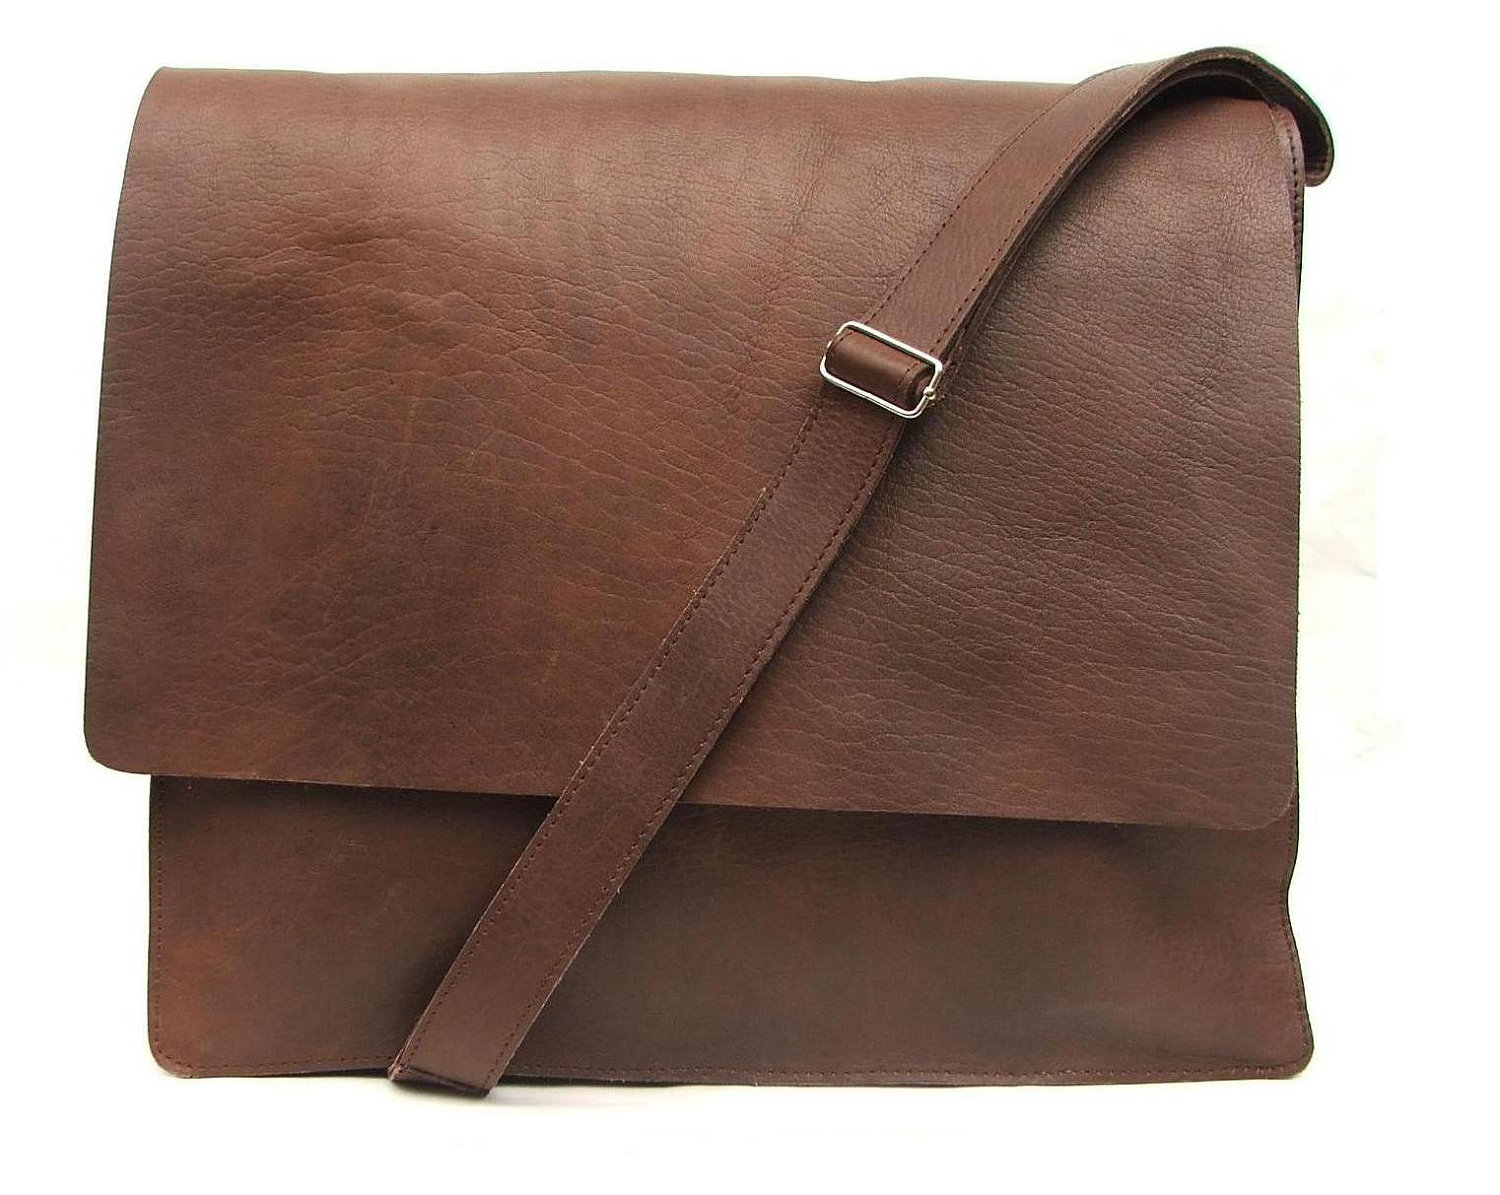 Leather Messenger Bags: Find the perfect messenger bags to carry your stuff from point A to point B at thritingetqay.cf Your Online Bags Store! Get 5% in rewards with Club O! Handmade Phive Rivers Men's Leather and Canvas Charcoal and Tan Laptop Bag (Italy) - One size.